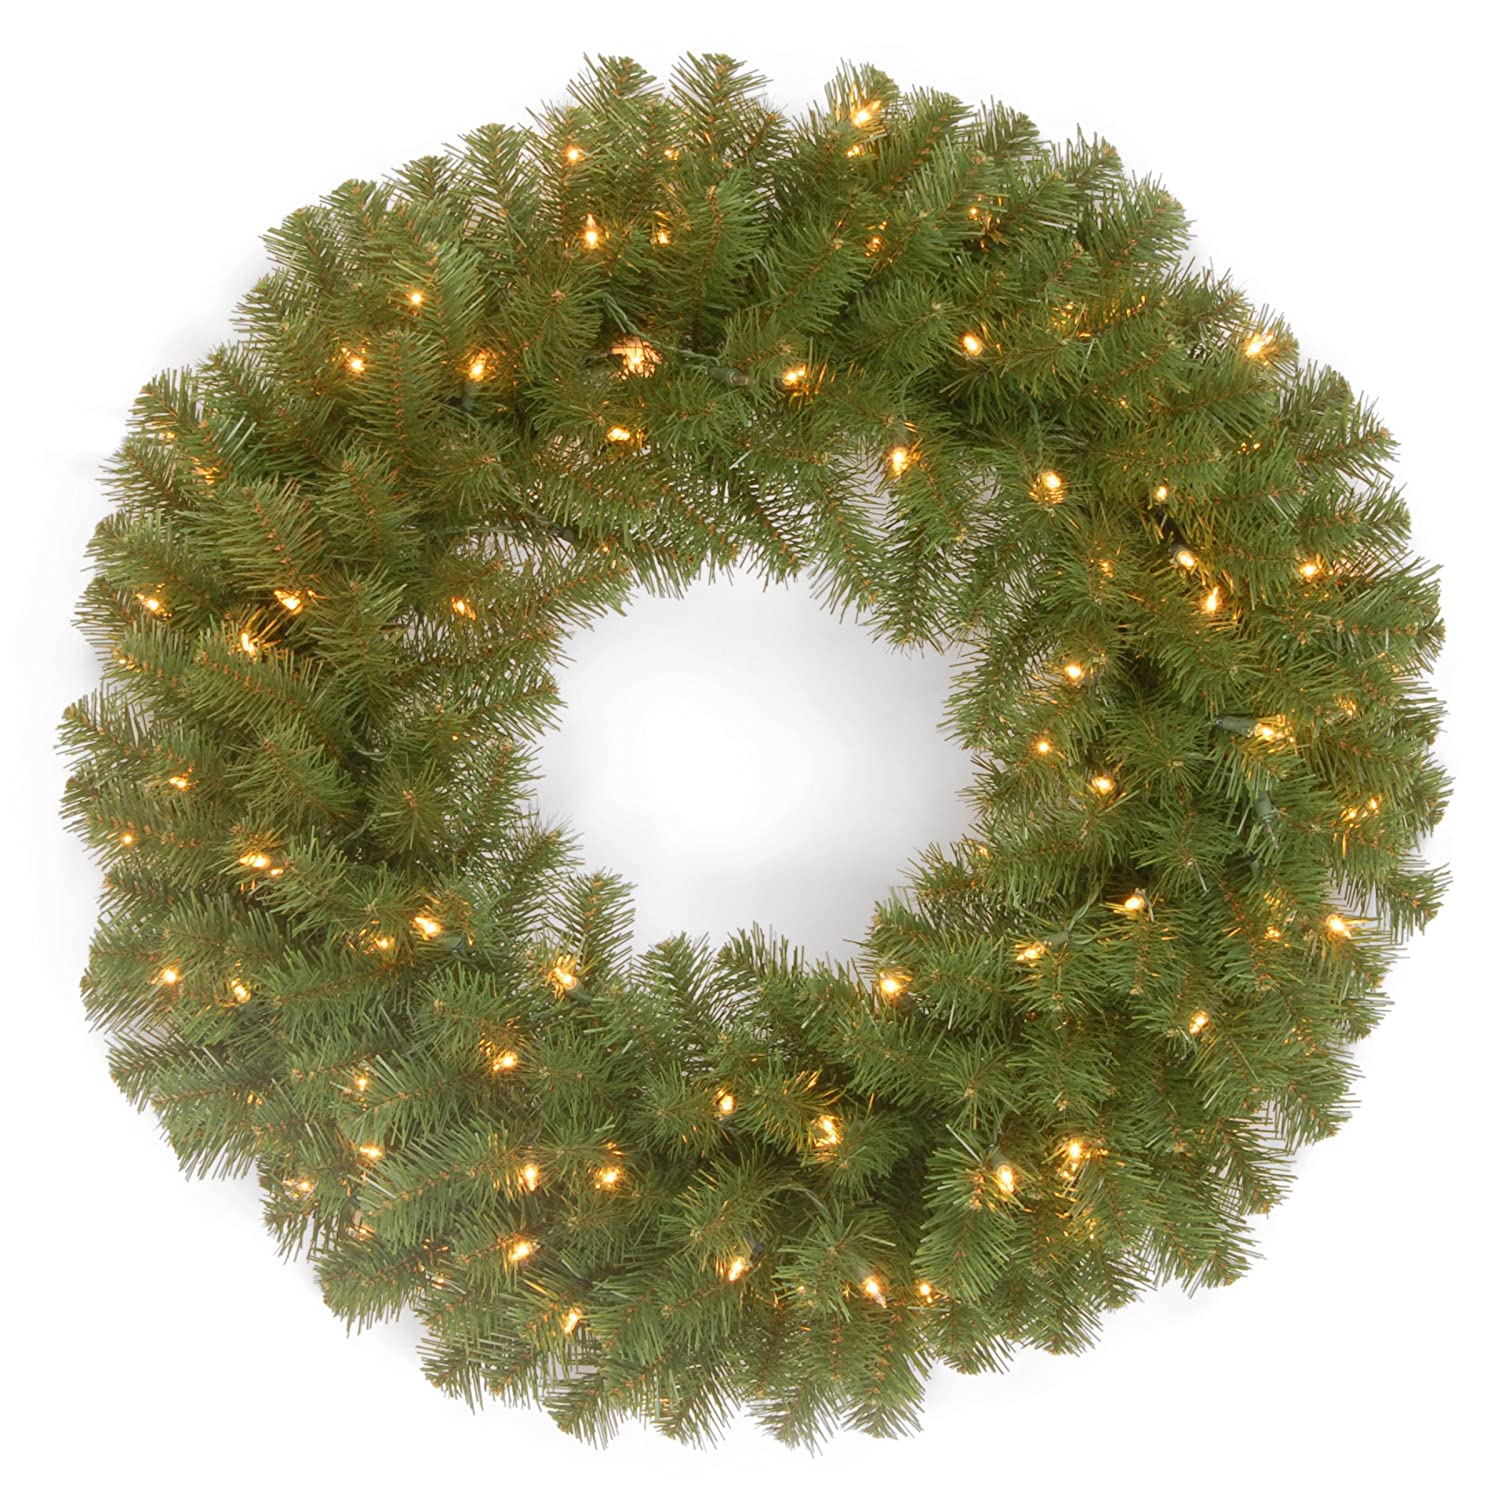 National Tree 24 Inch North Valley Spruce Wreath with 50 Clear Lights (NRV7-300-24W-1)